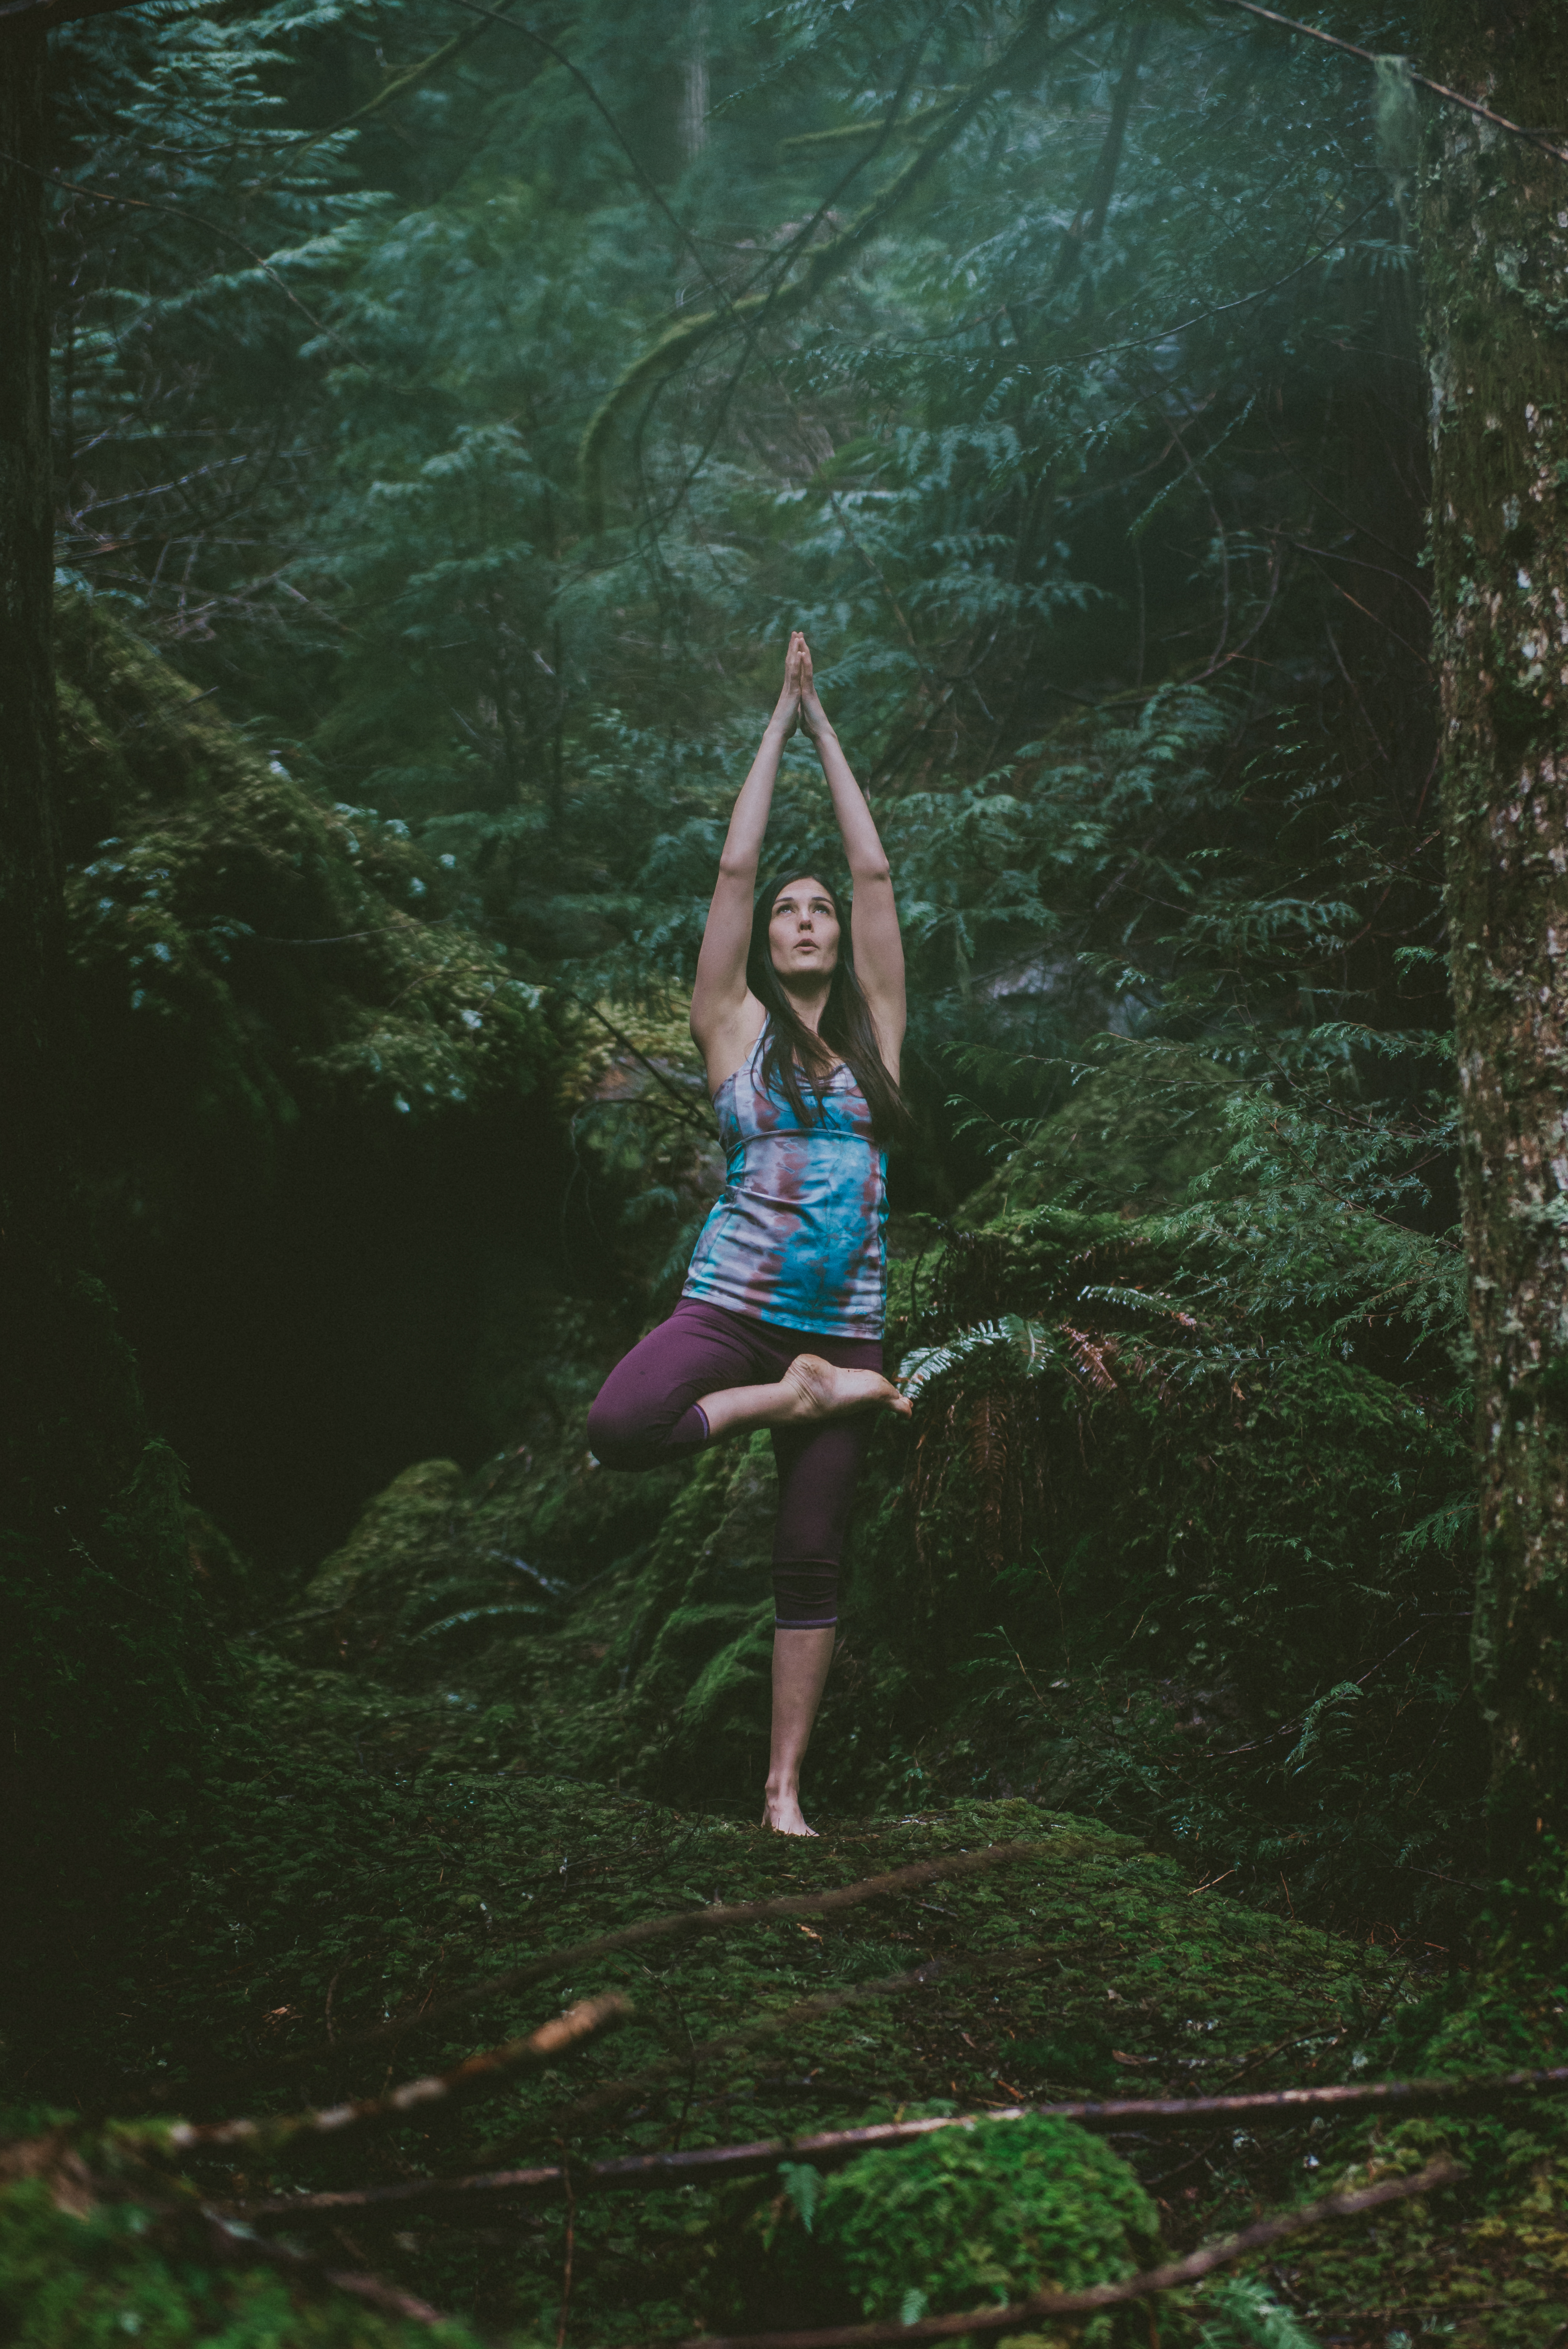 Tree pose among the trees